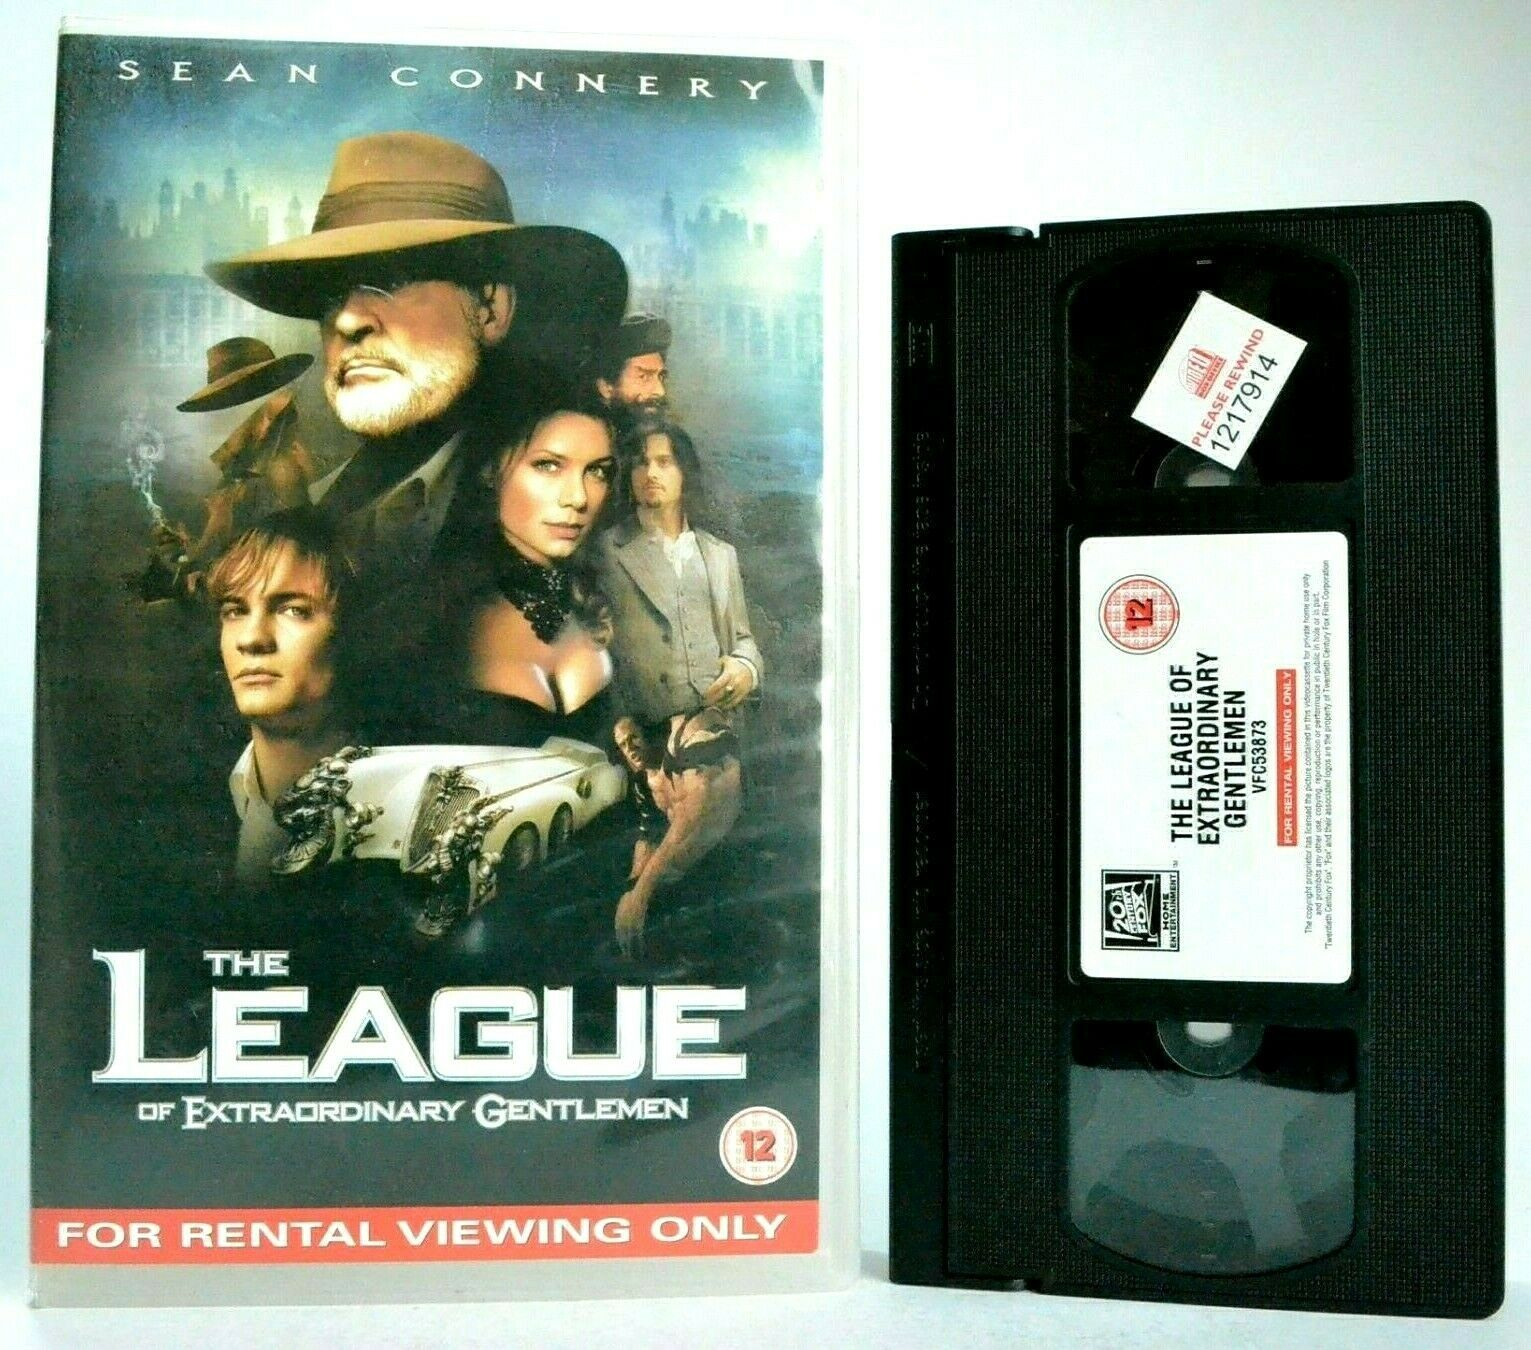 The League Of Extraordinary Gentlemen: Steampunk Film - Sean Connery - Pal VHS